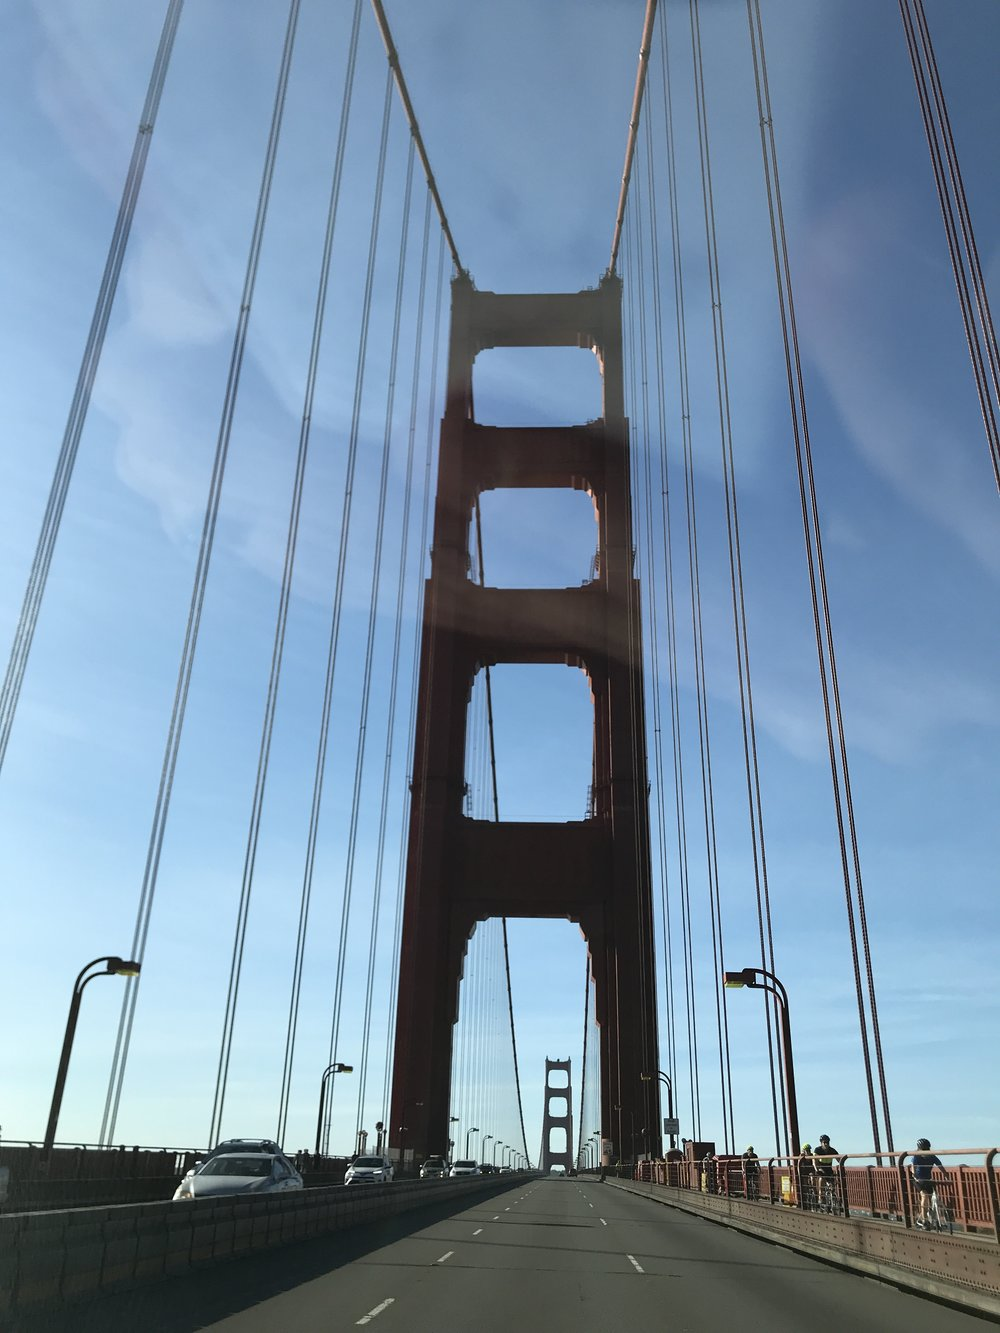 One of the best parts of living close to San Francisco is the drive over the bridge on a beautiful clear day!